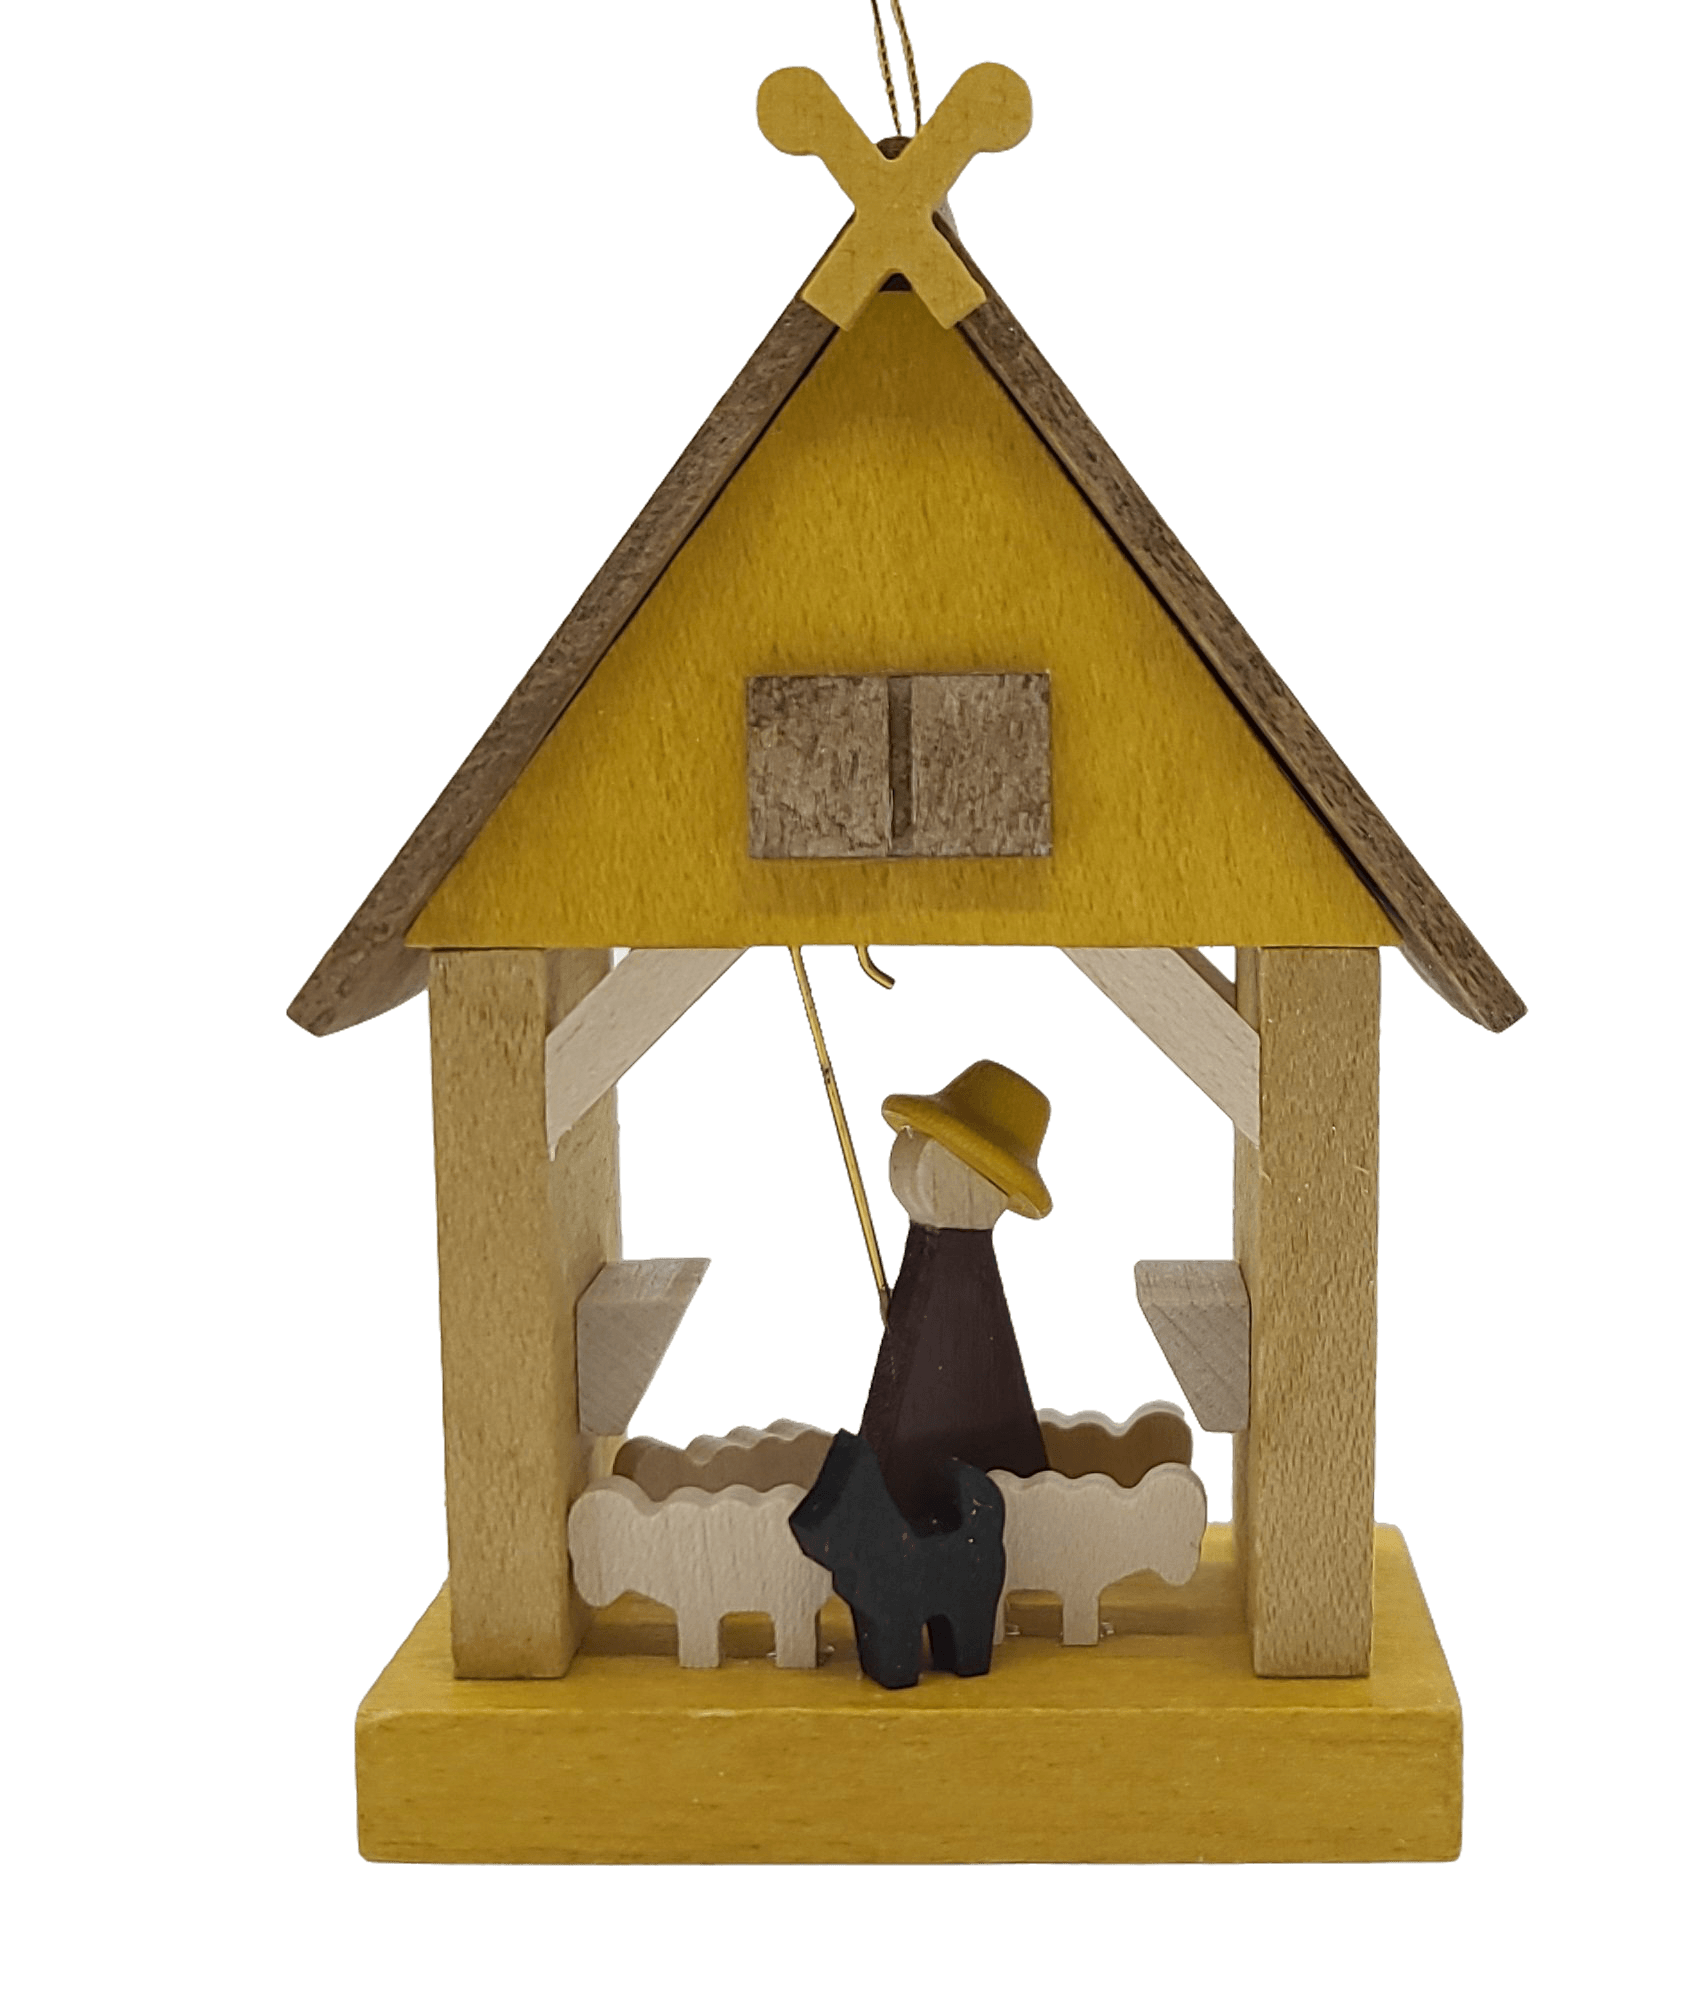 Handmade Hanging Shepherds House Ornament - Schmidt Christmas Market Christmas Decoration